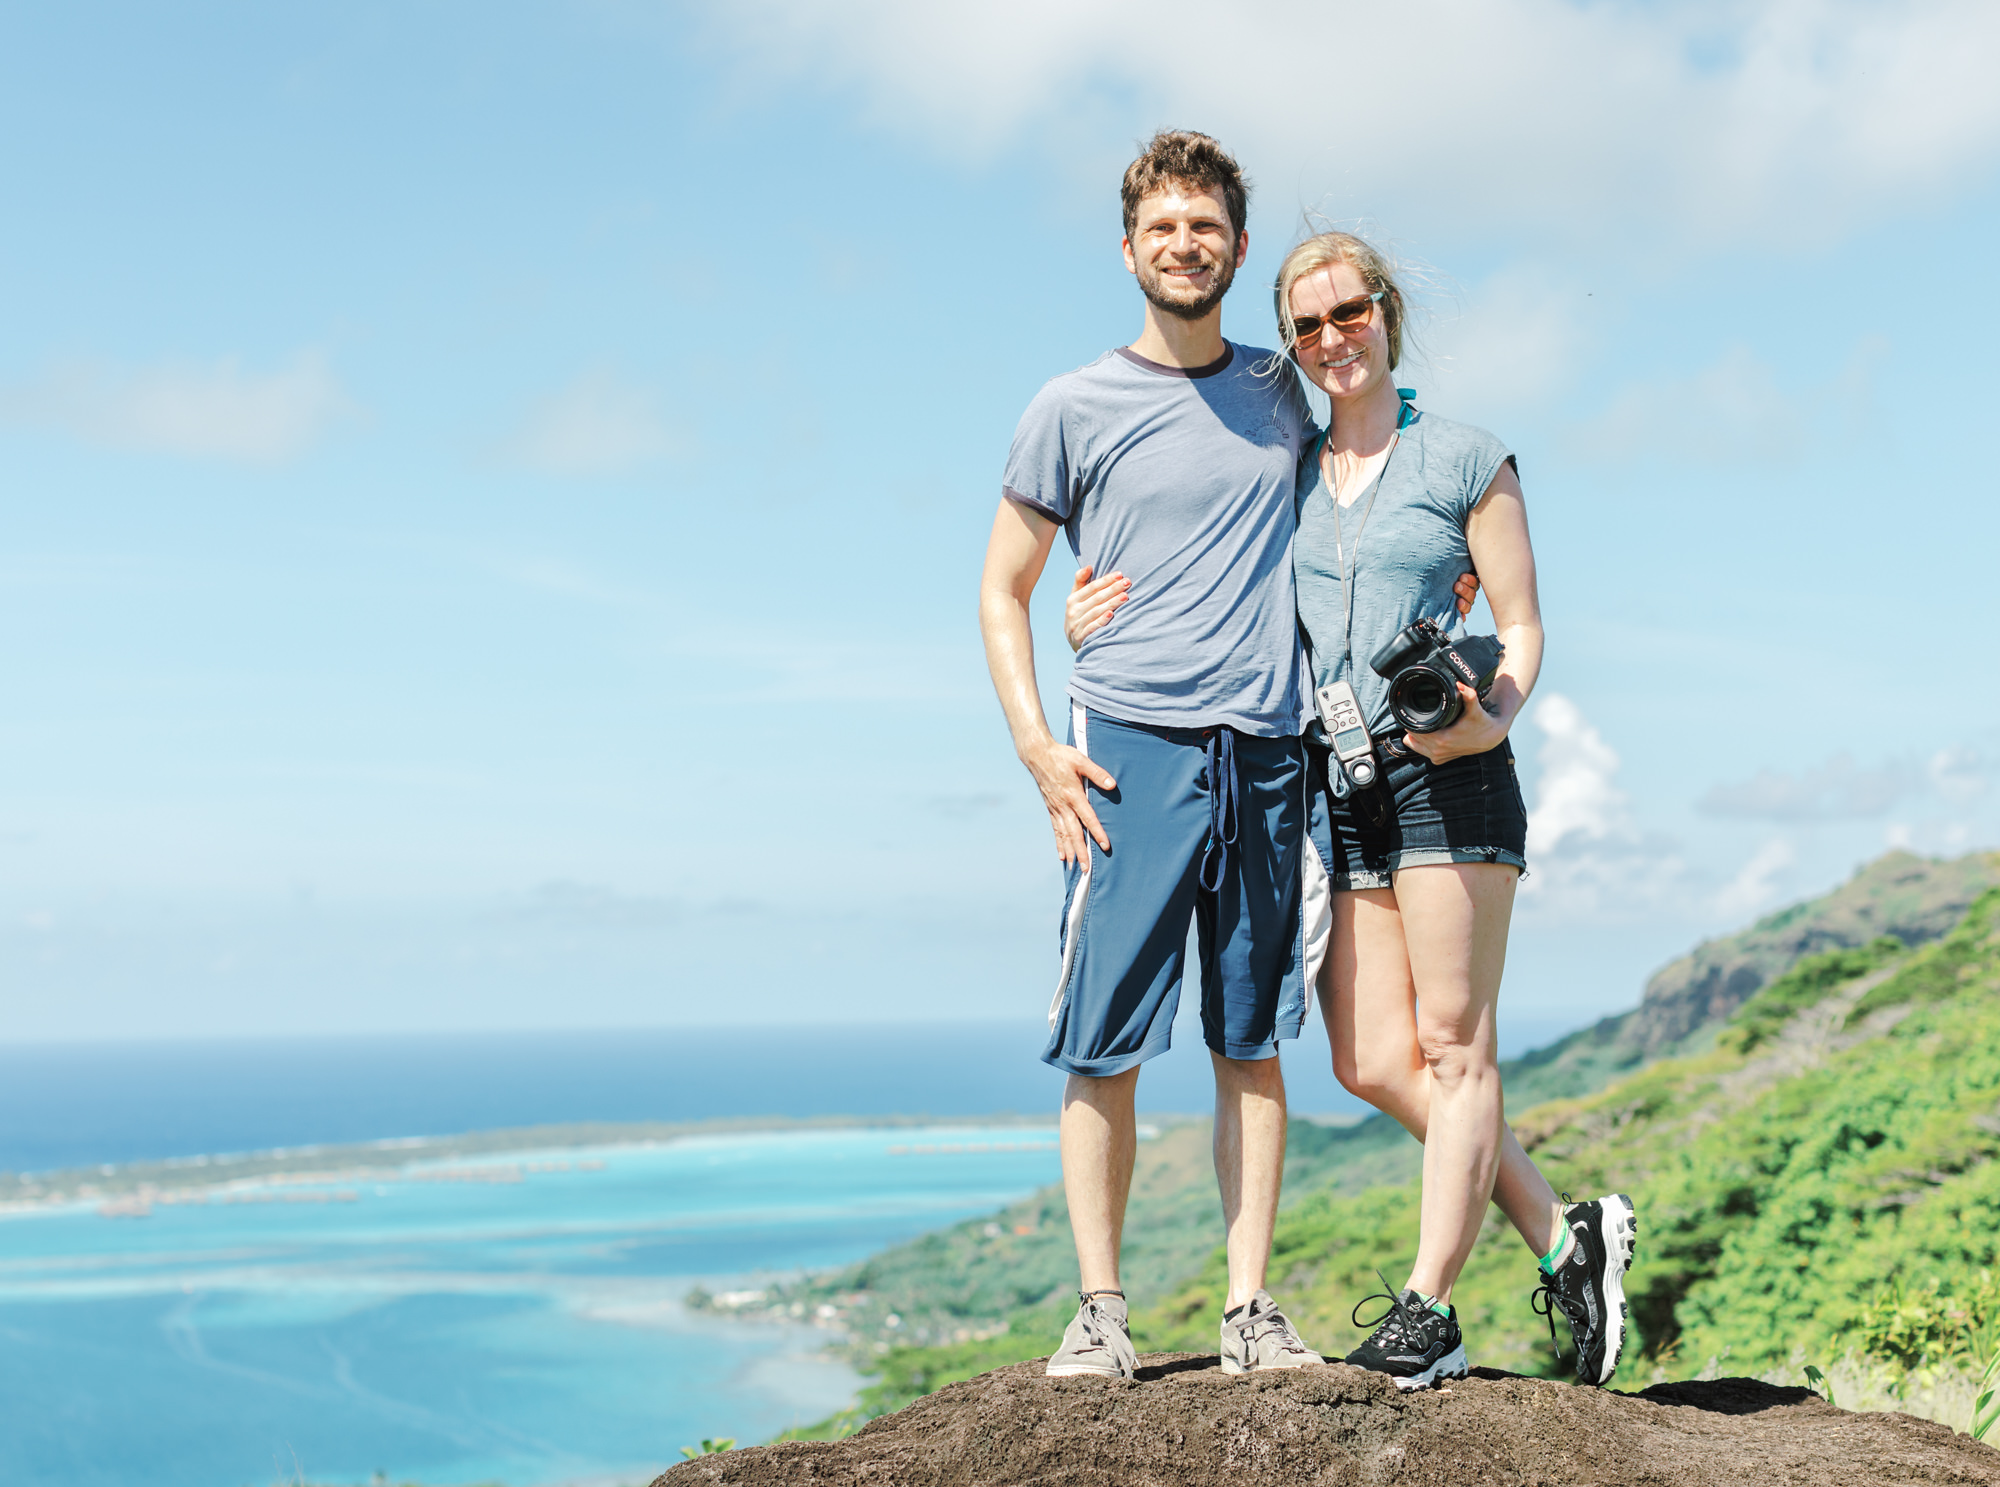 Bora Bora ATV Tour for our honeymoon on top of a mountain with the entire island waters in the background